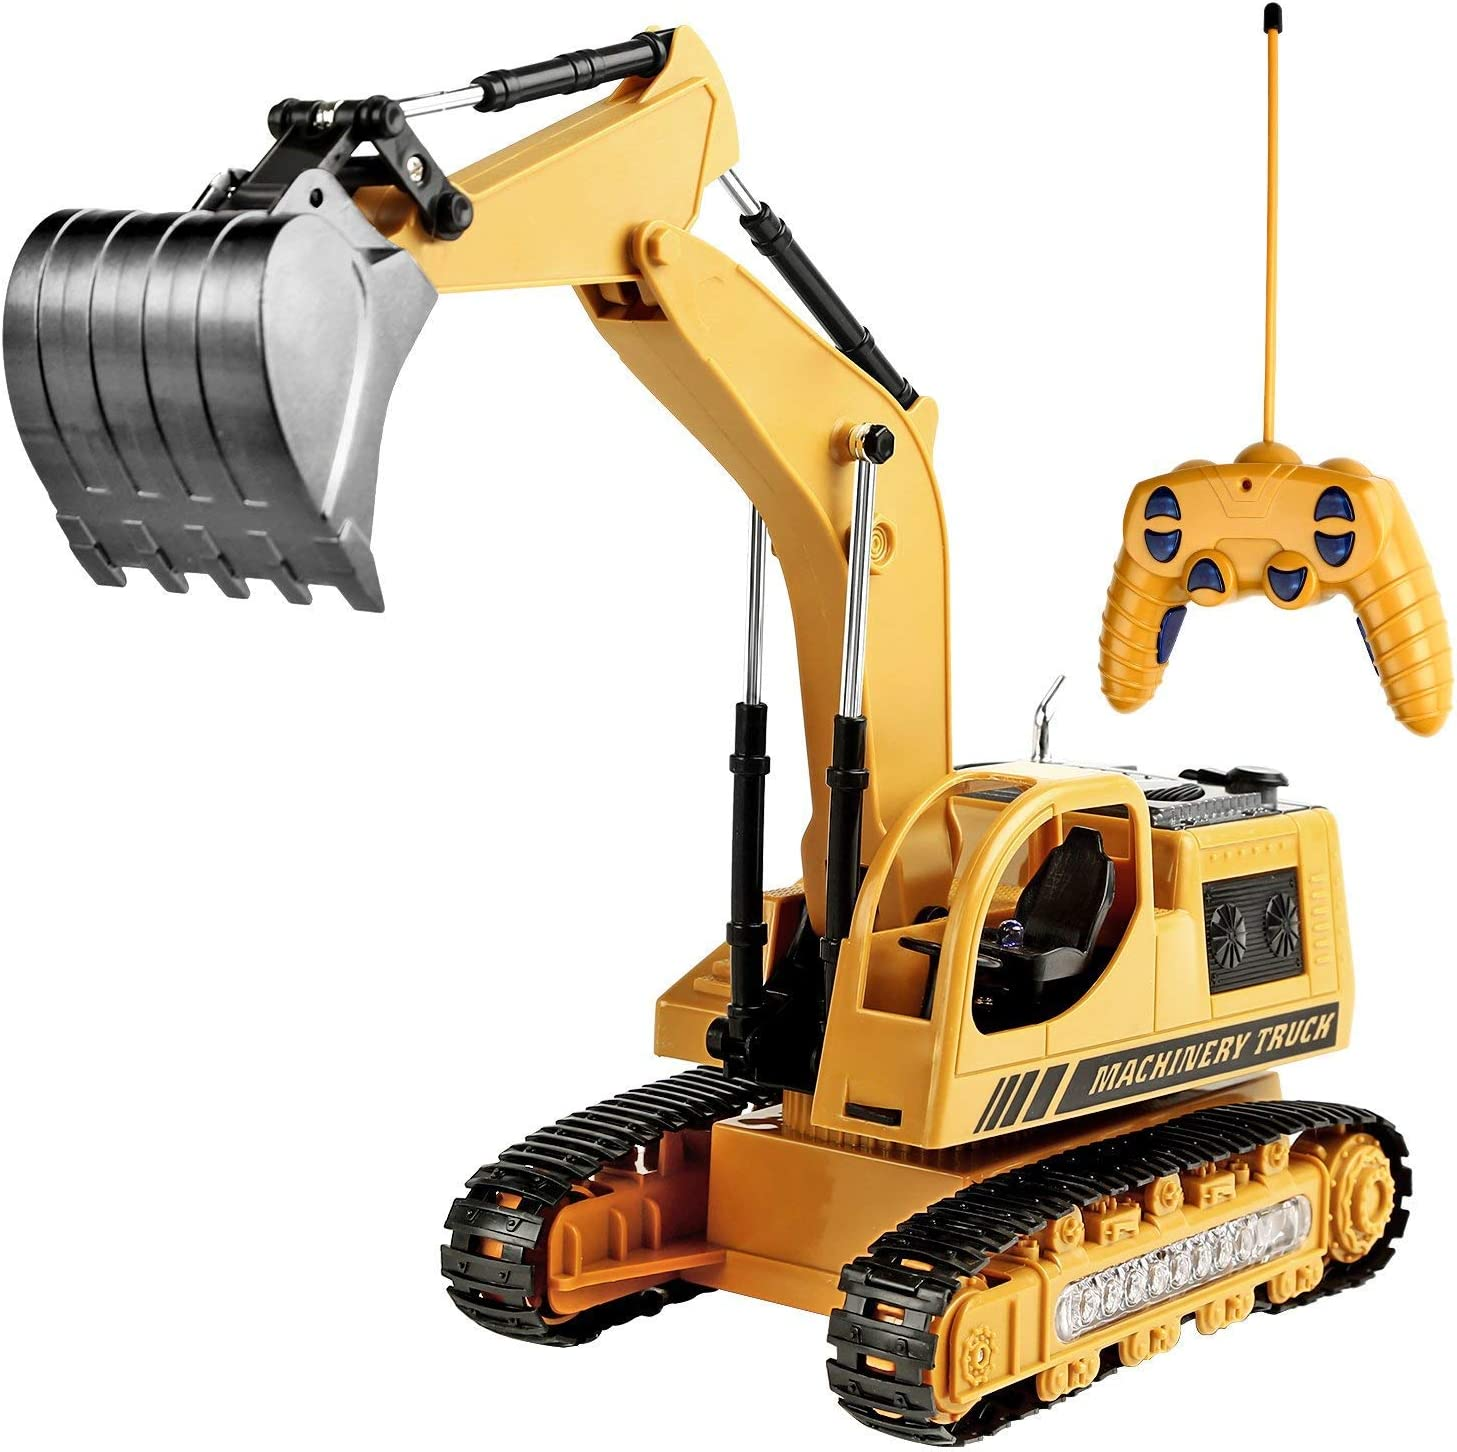 Top 16 Best Remote Control Excavator (2020 Reviews & Buying Guide) 14